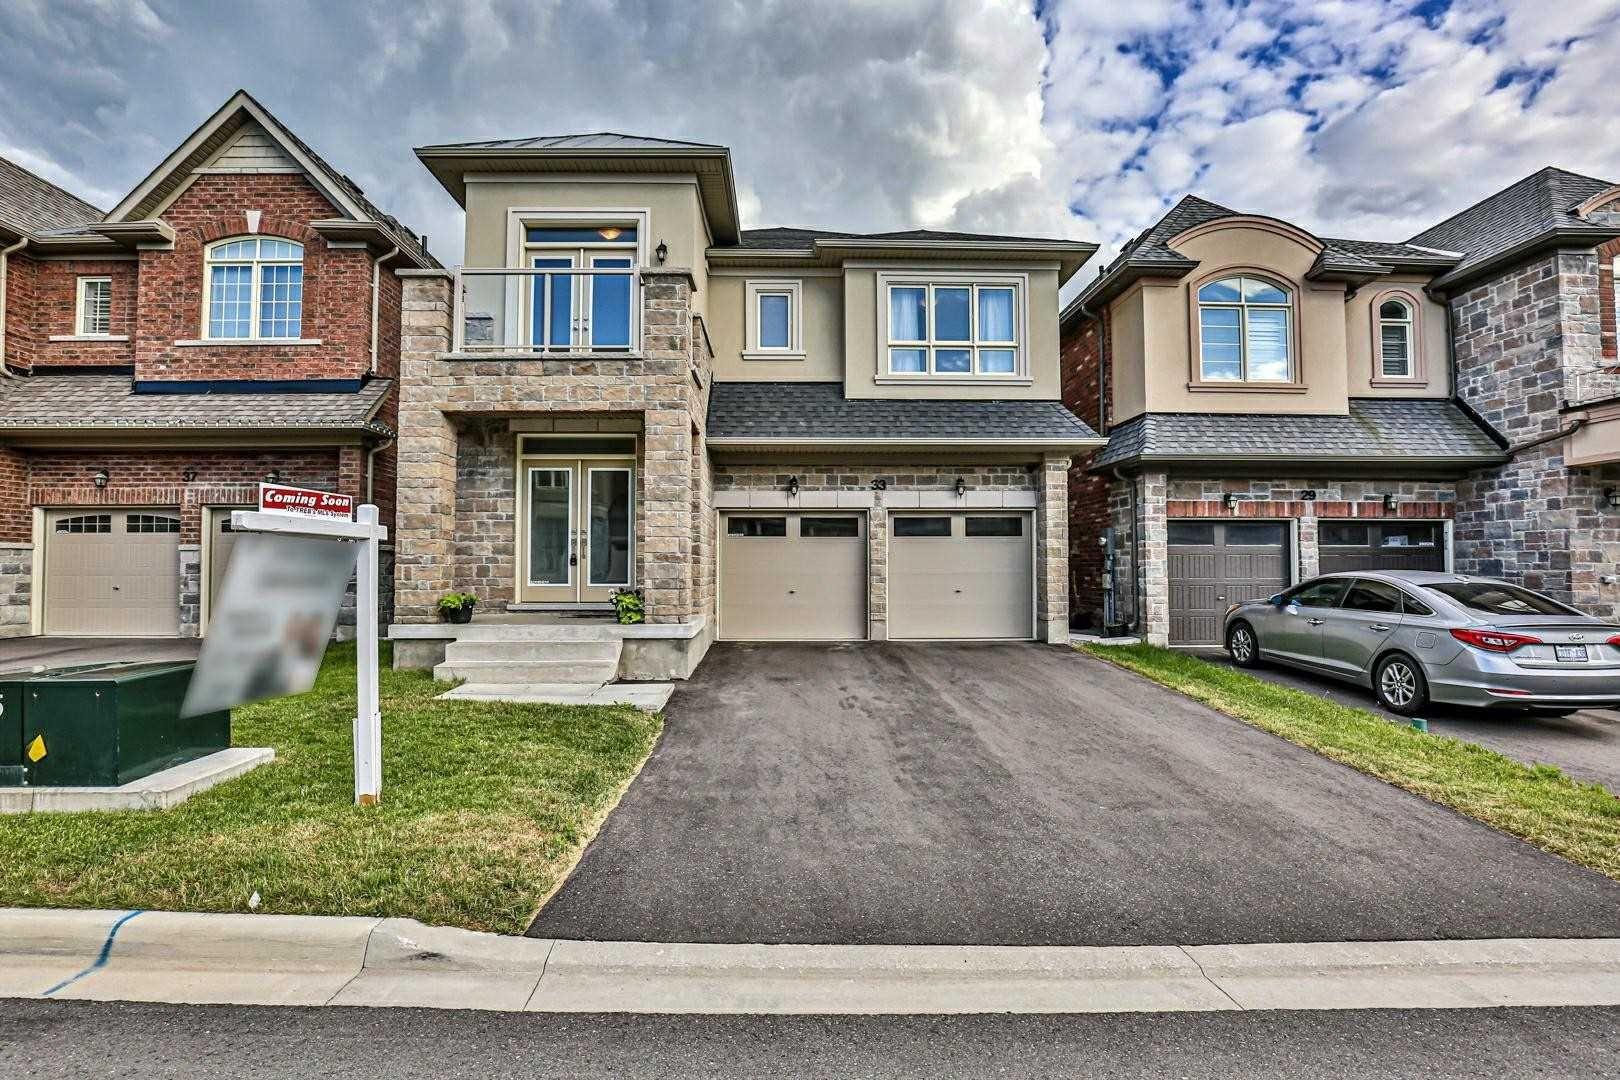 Main Photo: 33 Mondial Crescent in East Gwillimbury: Queensville House (2-Storey) for sale : MLS®# N4807441